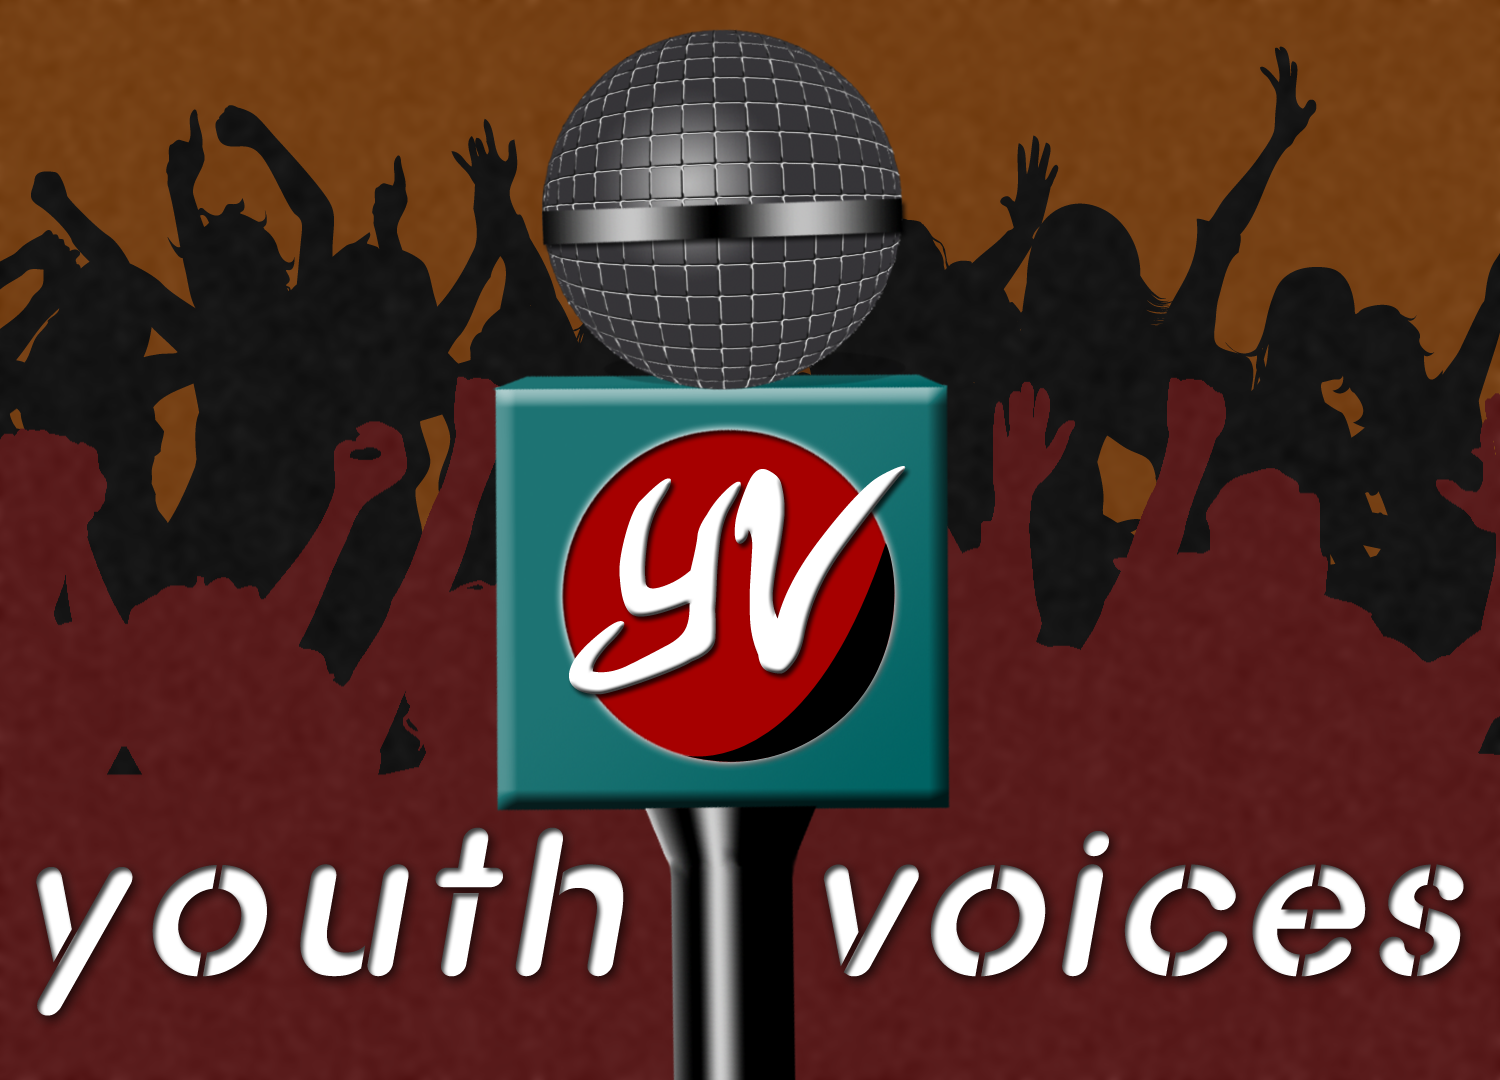 March 24, 2018: Youth Voices and LRNG Workshop